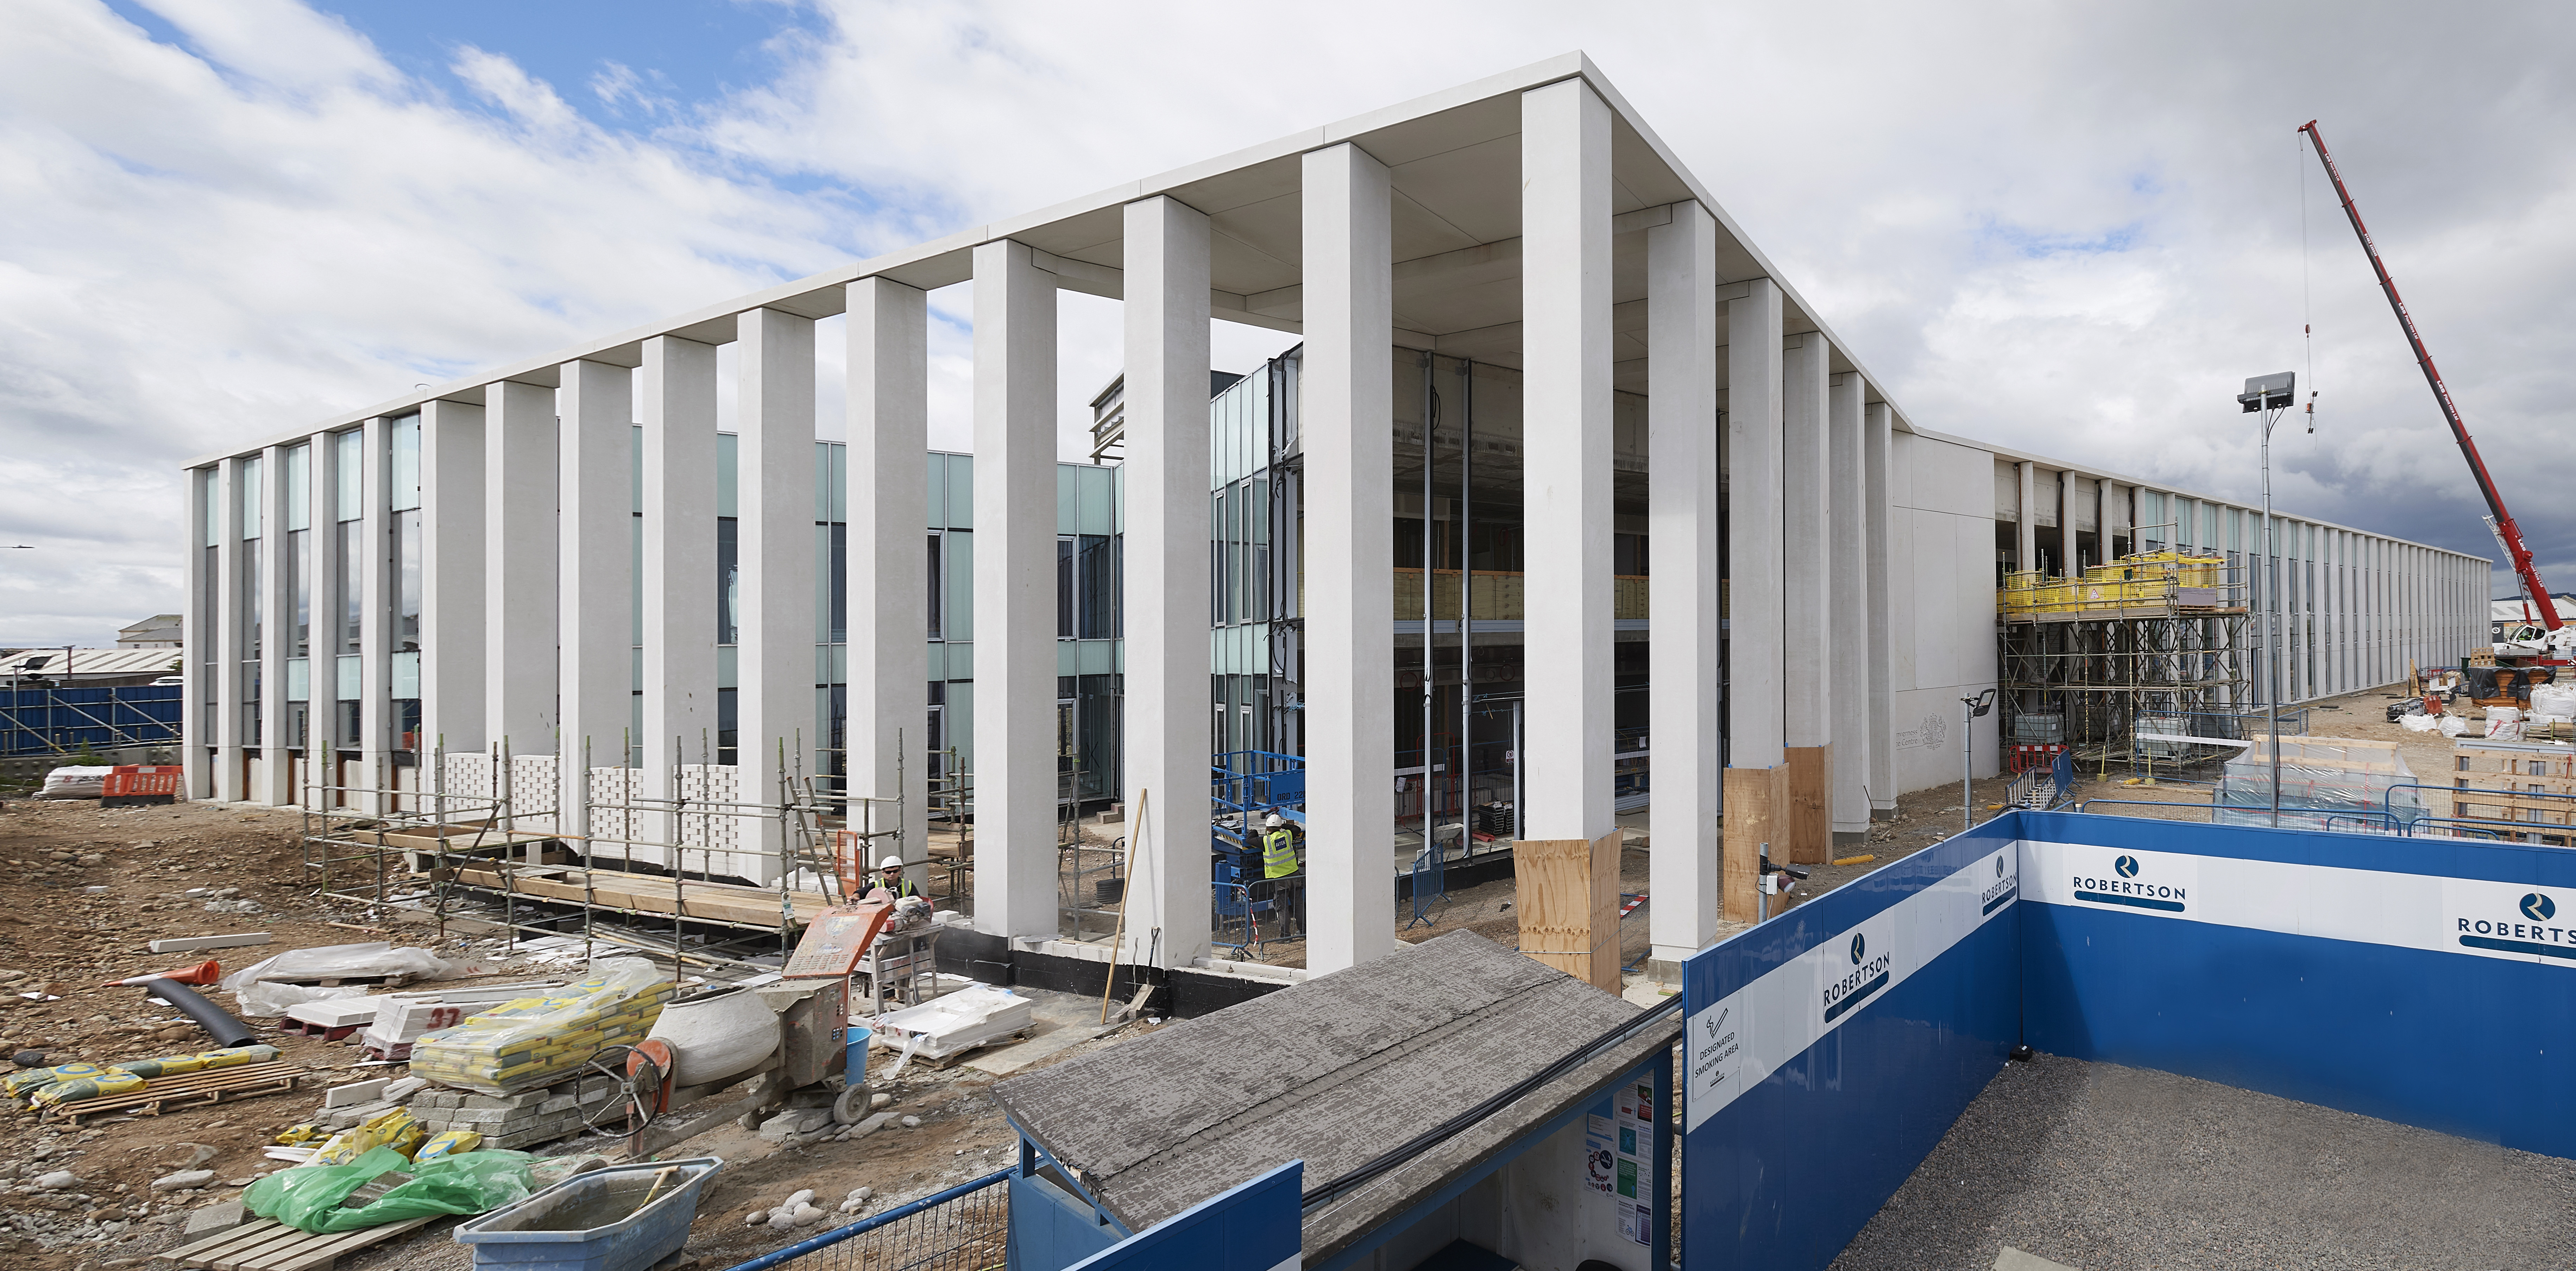 Inverness Justice Centre, under construction in 2019